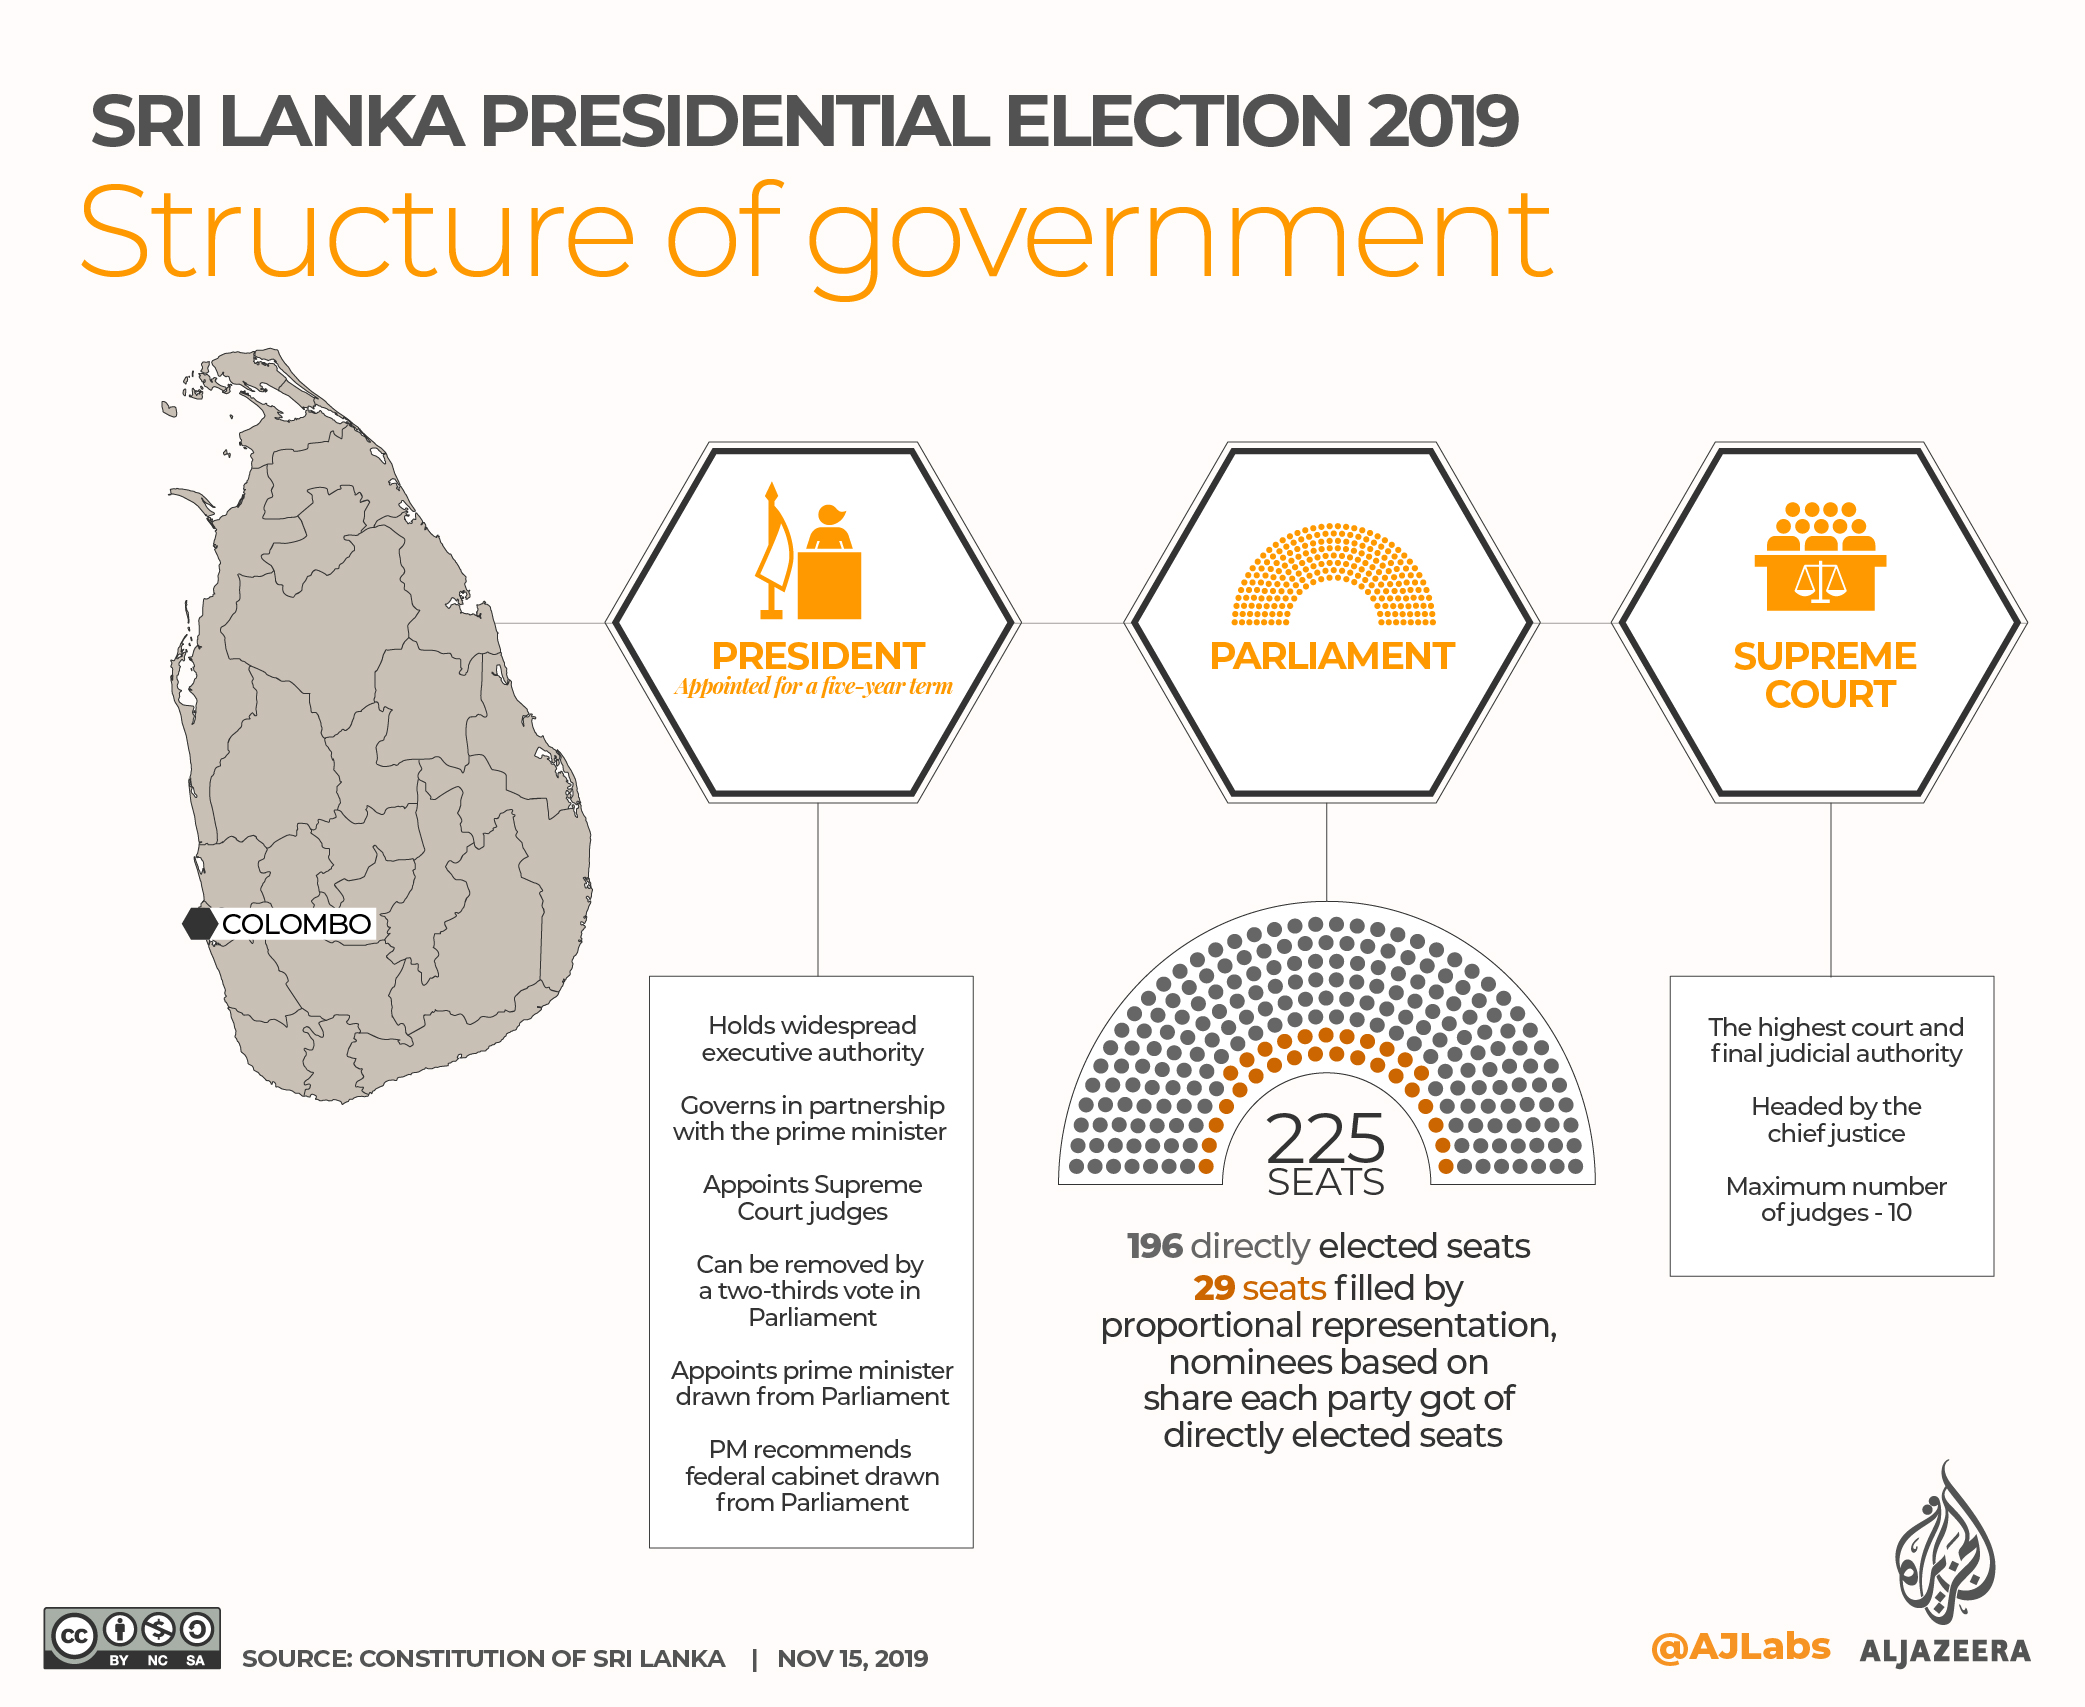 INTERACTIVE: SRI LANKA PRESIDENTIAL ELECTION 2019 - Structure of govt